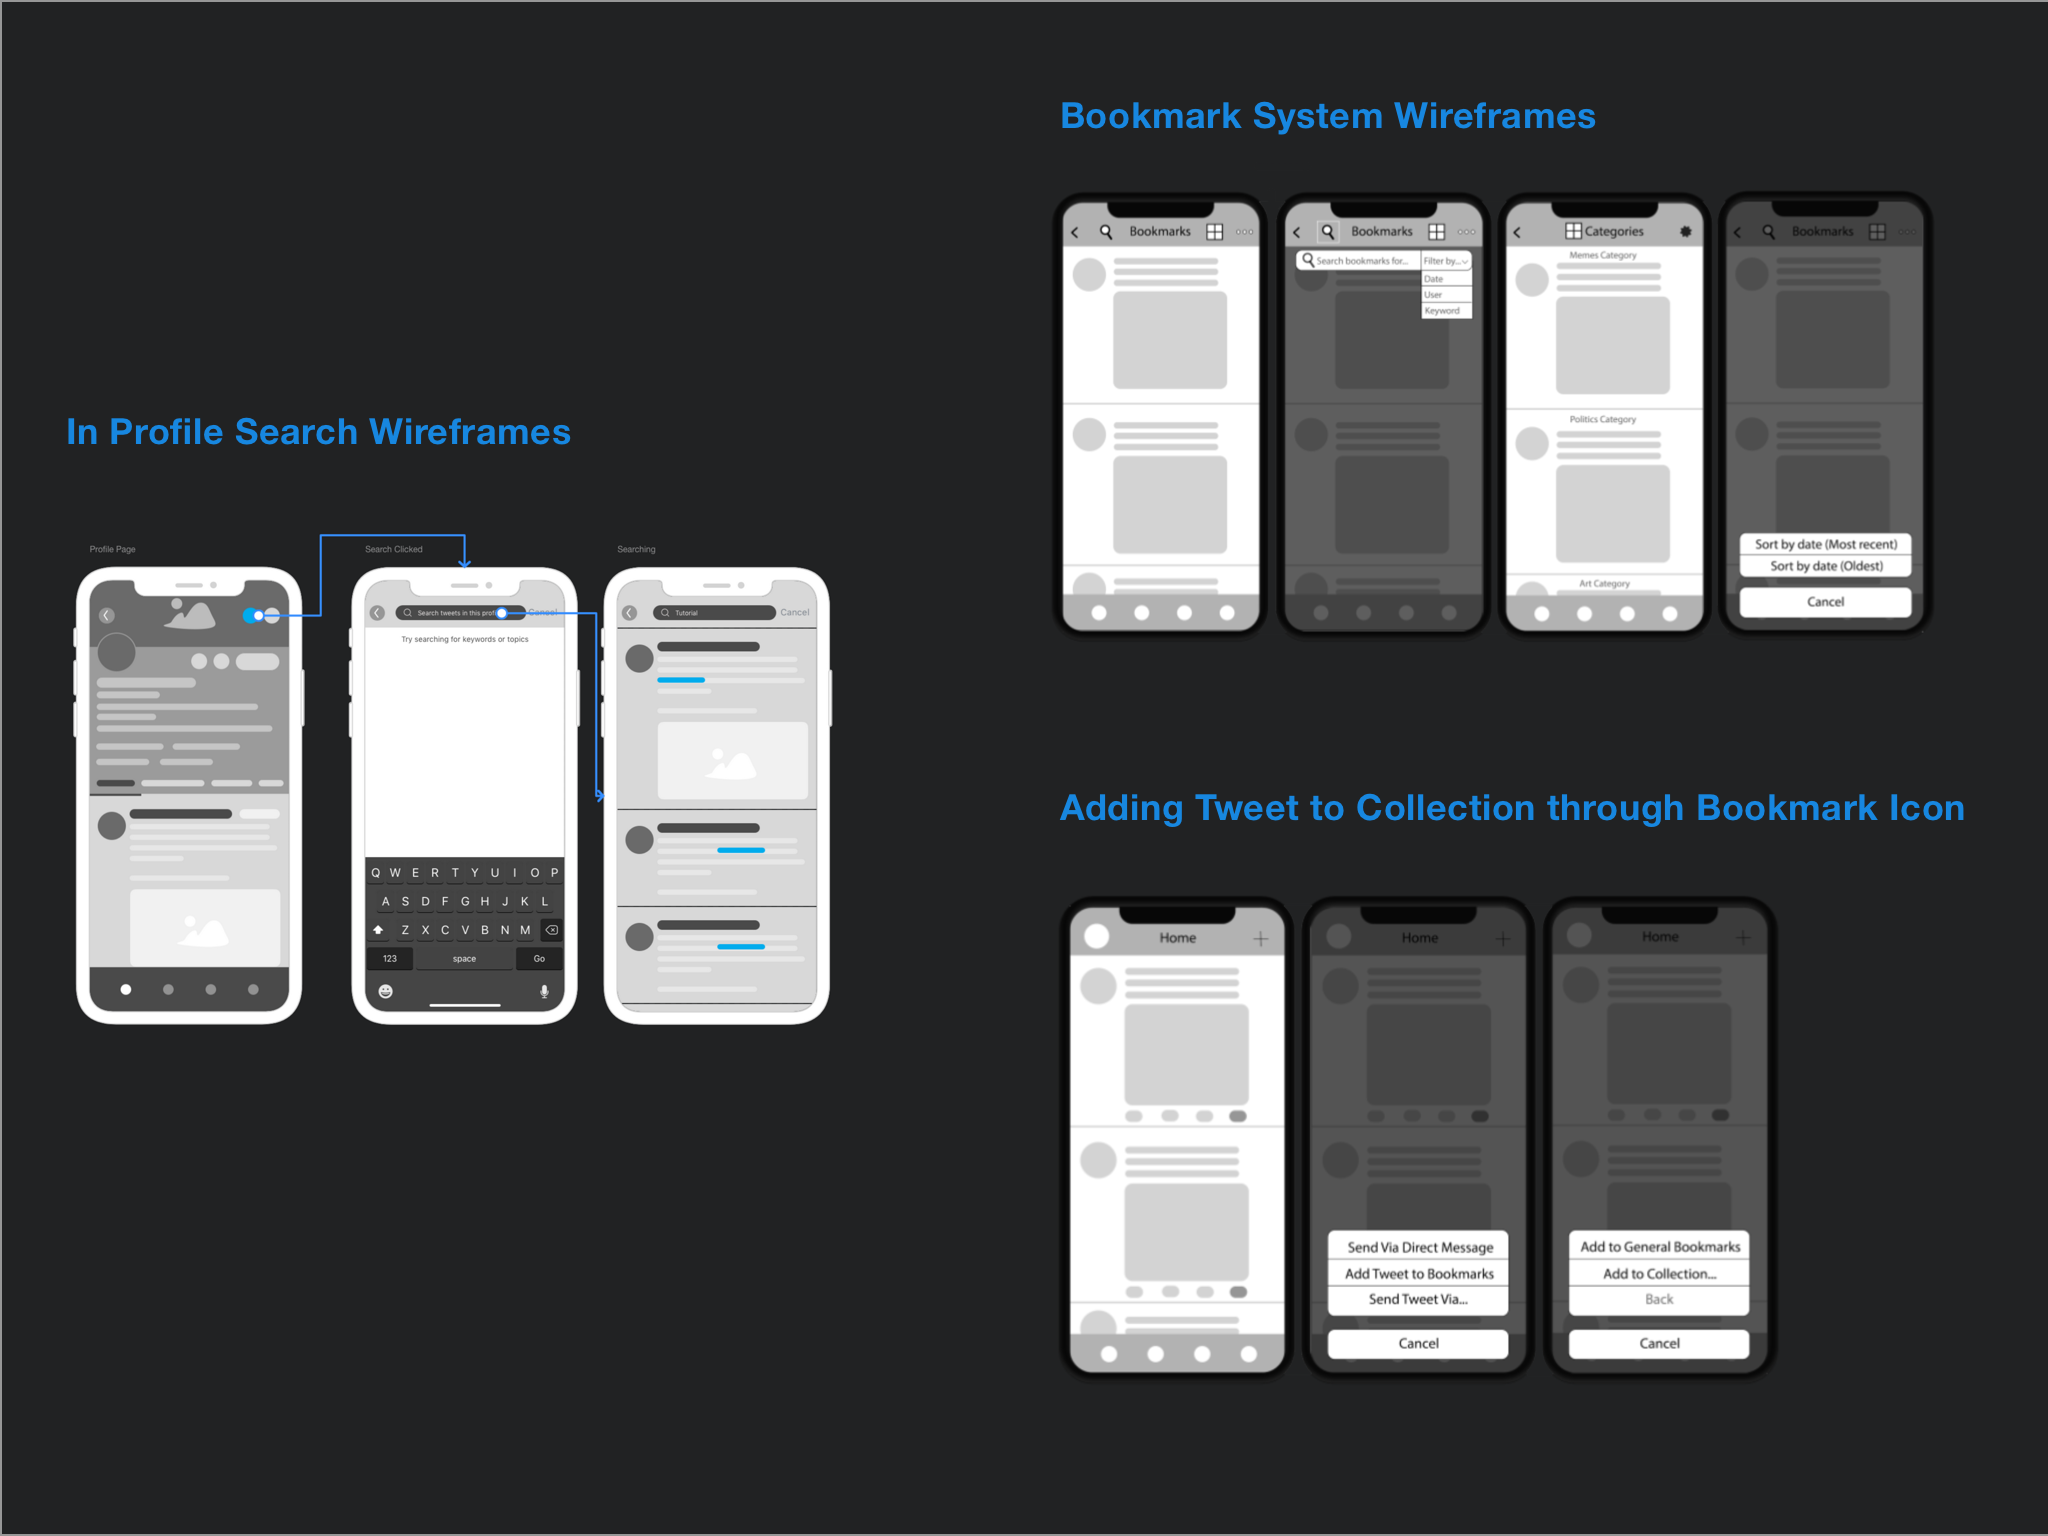 Wireframes for the profile-in search and bookmark collection microinteraction additions.